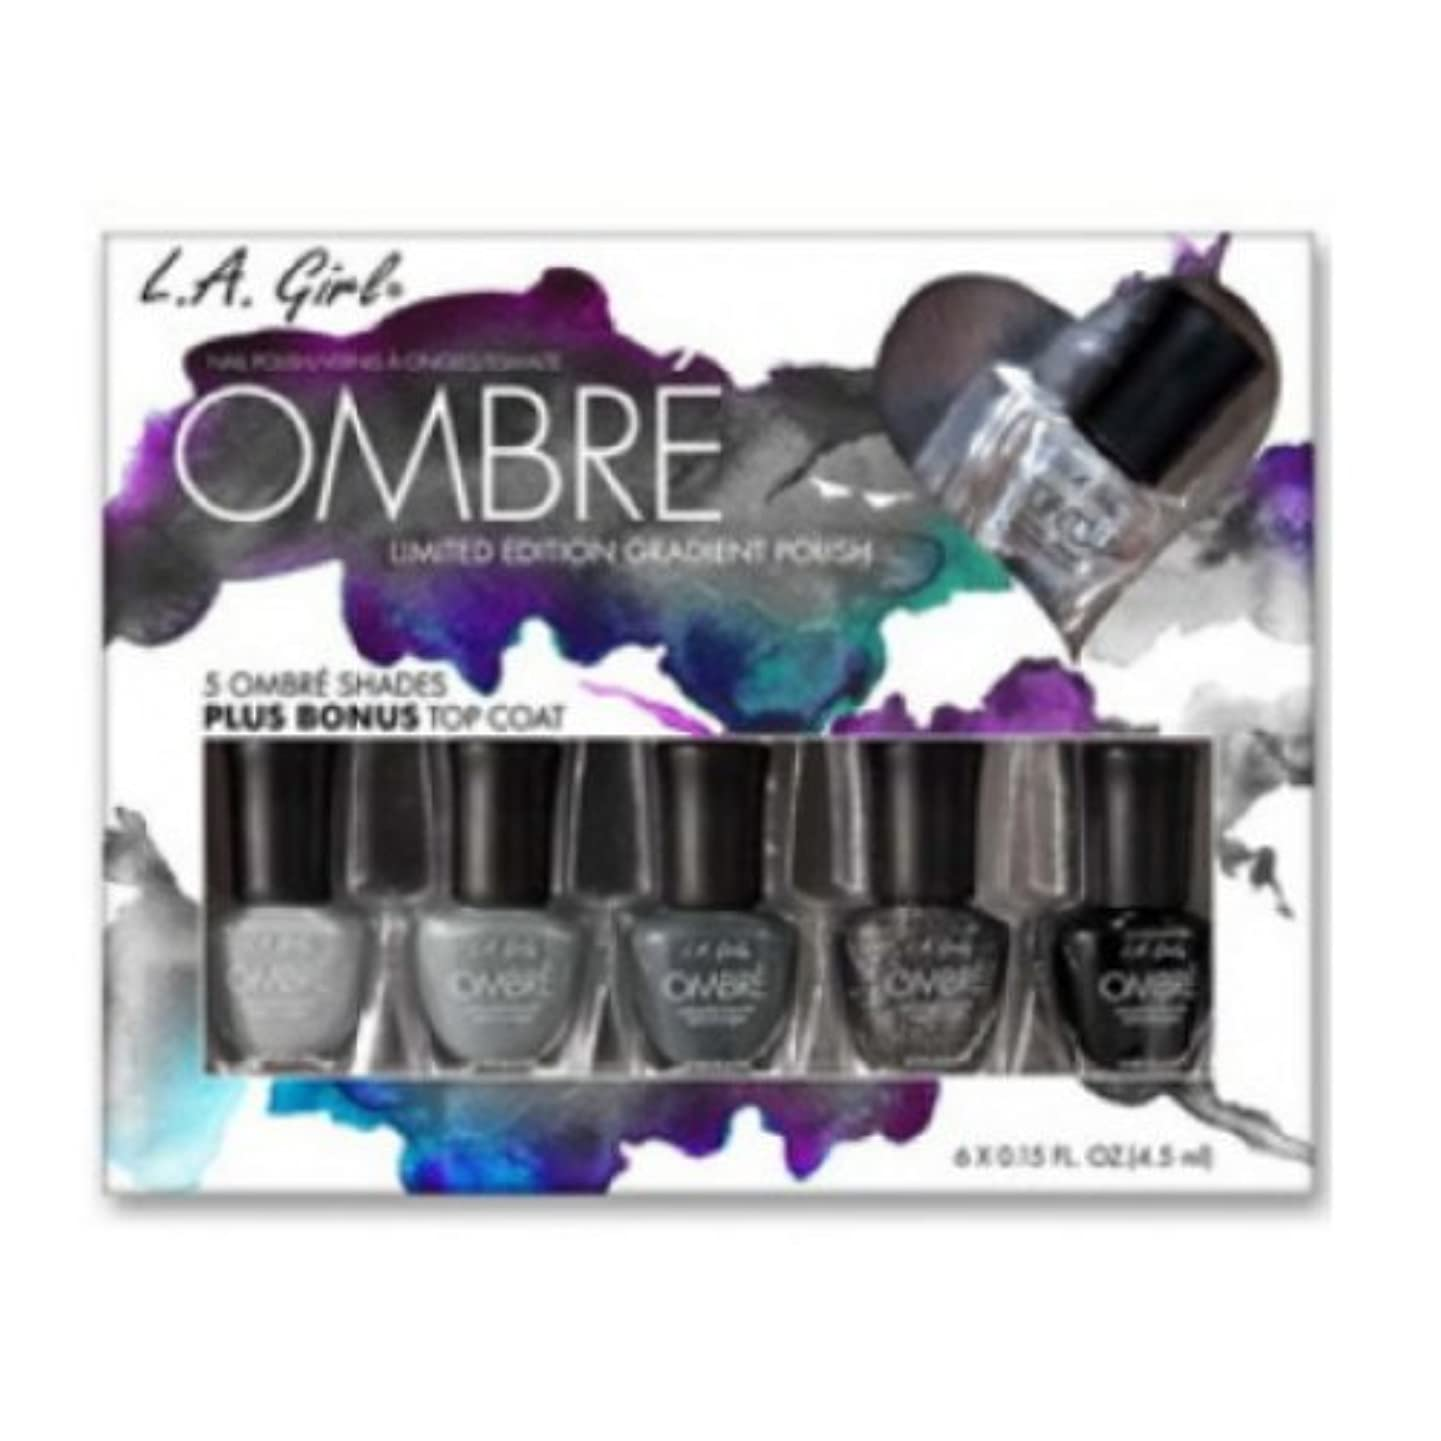 行進物思いにふける祝福する(3 Pack) L.A. GIRL Ombre Limited Edition Gradient Polish Set - Midnite (並行輸入品)